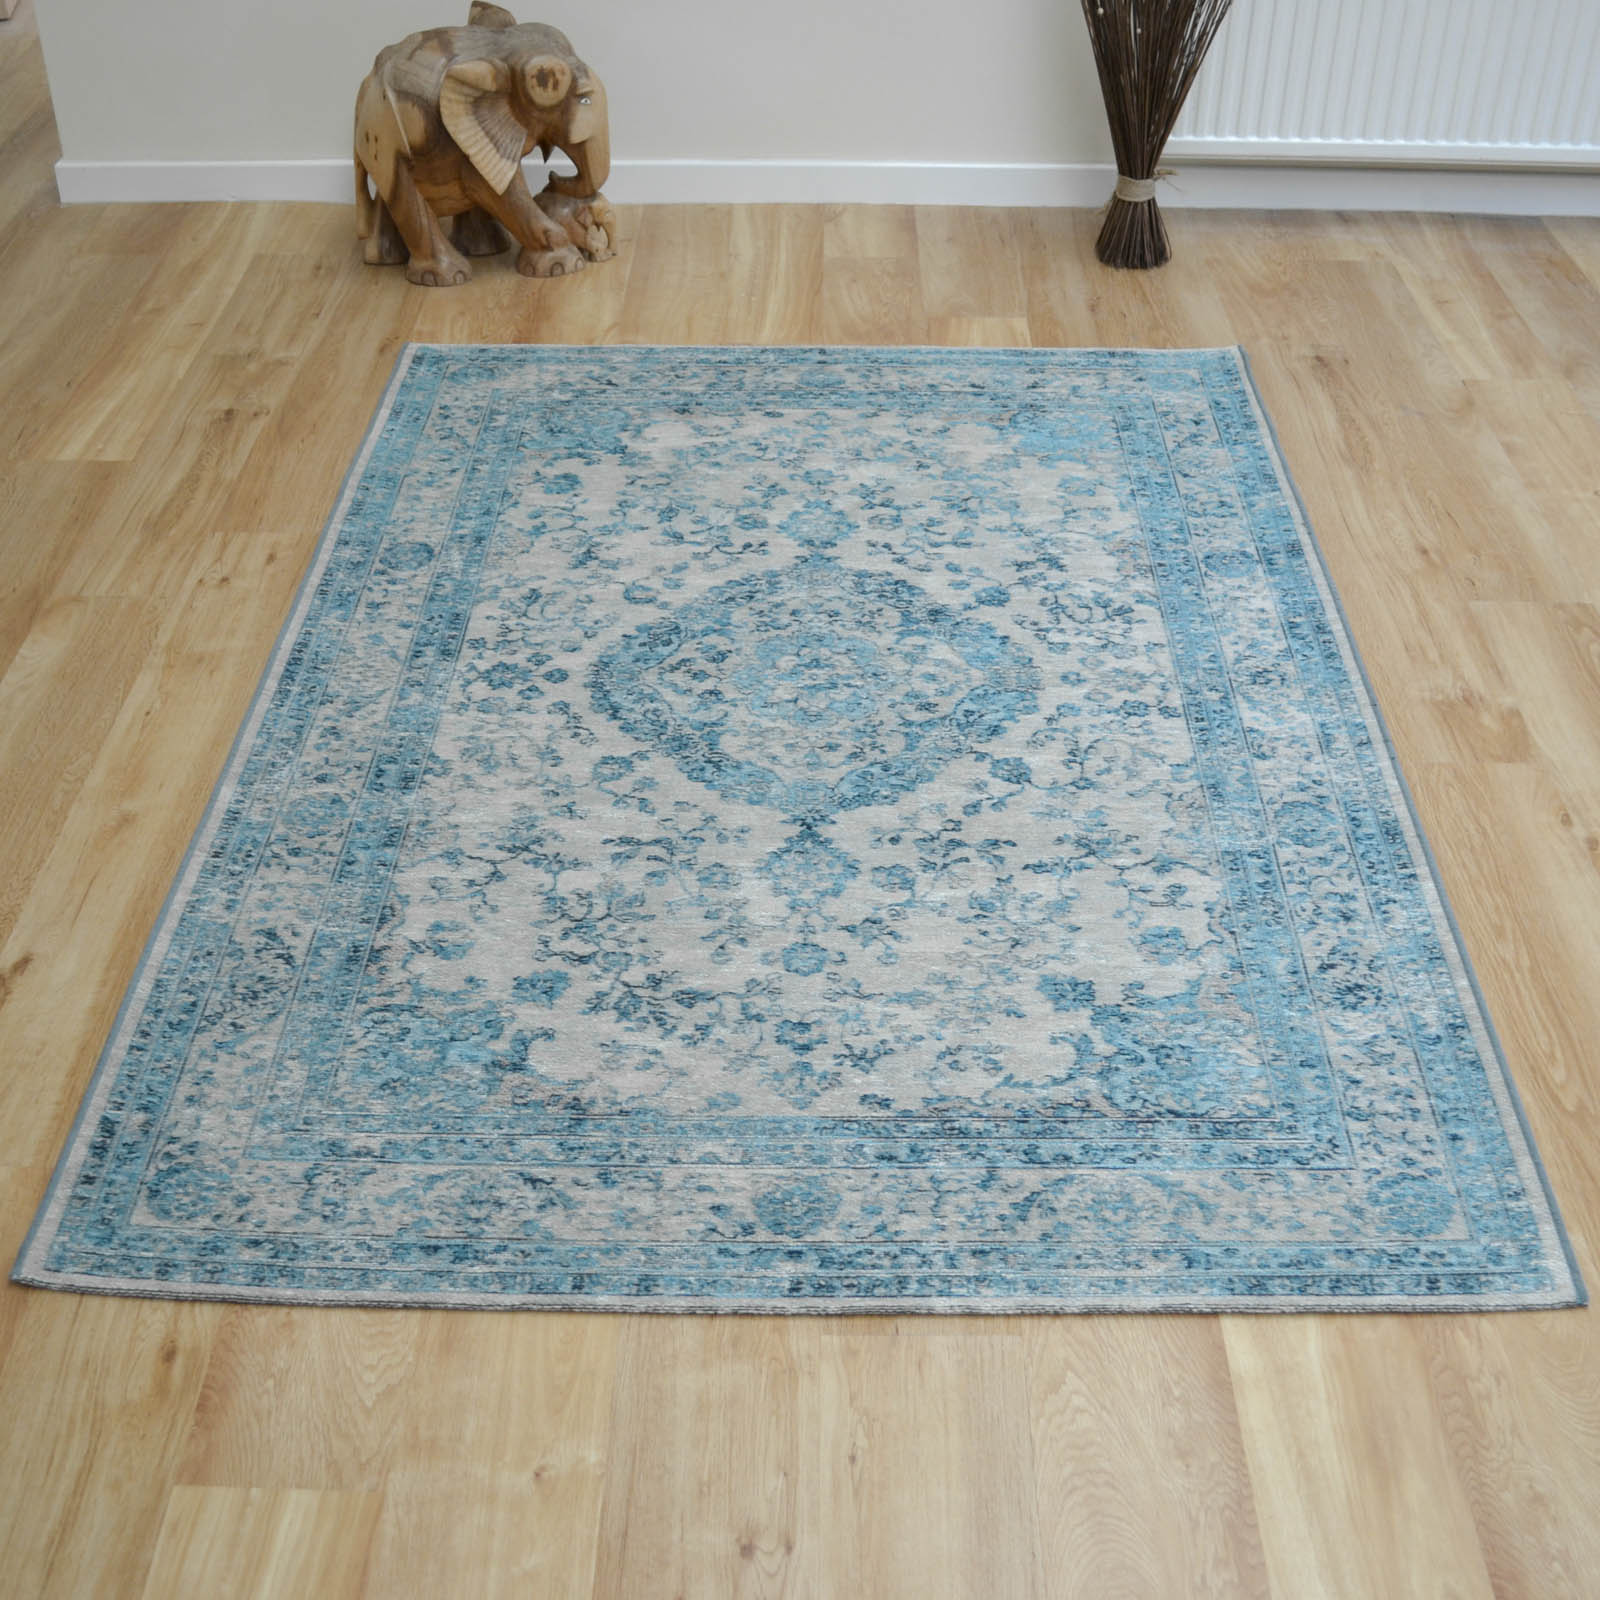 Capri Rugs 91269 5003 in Blue and Grey